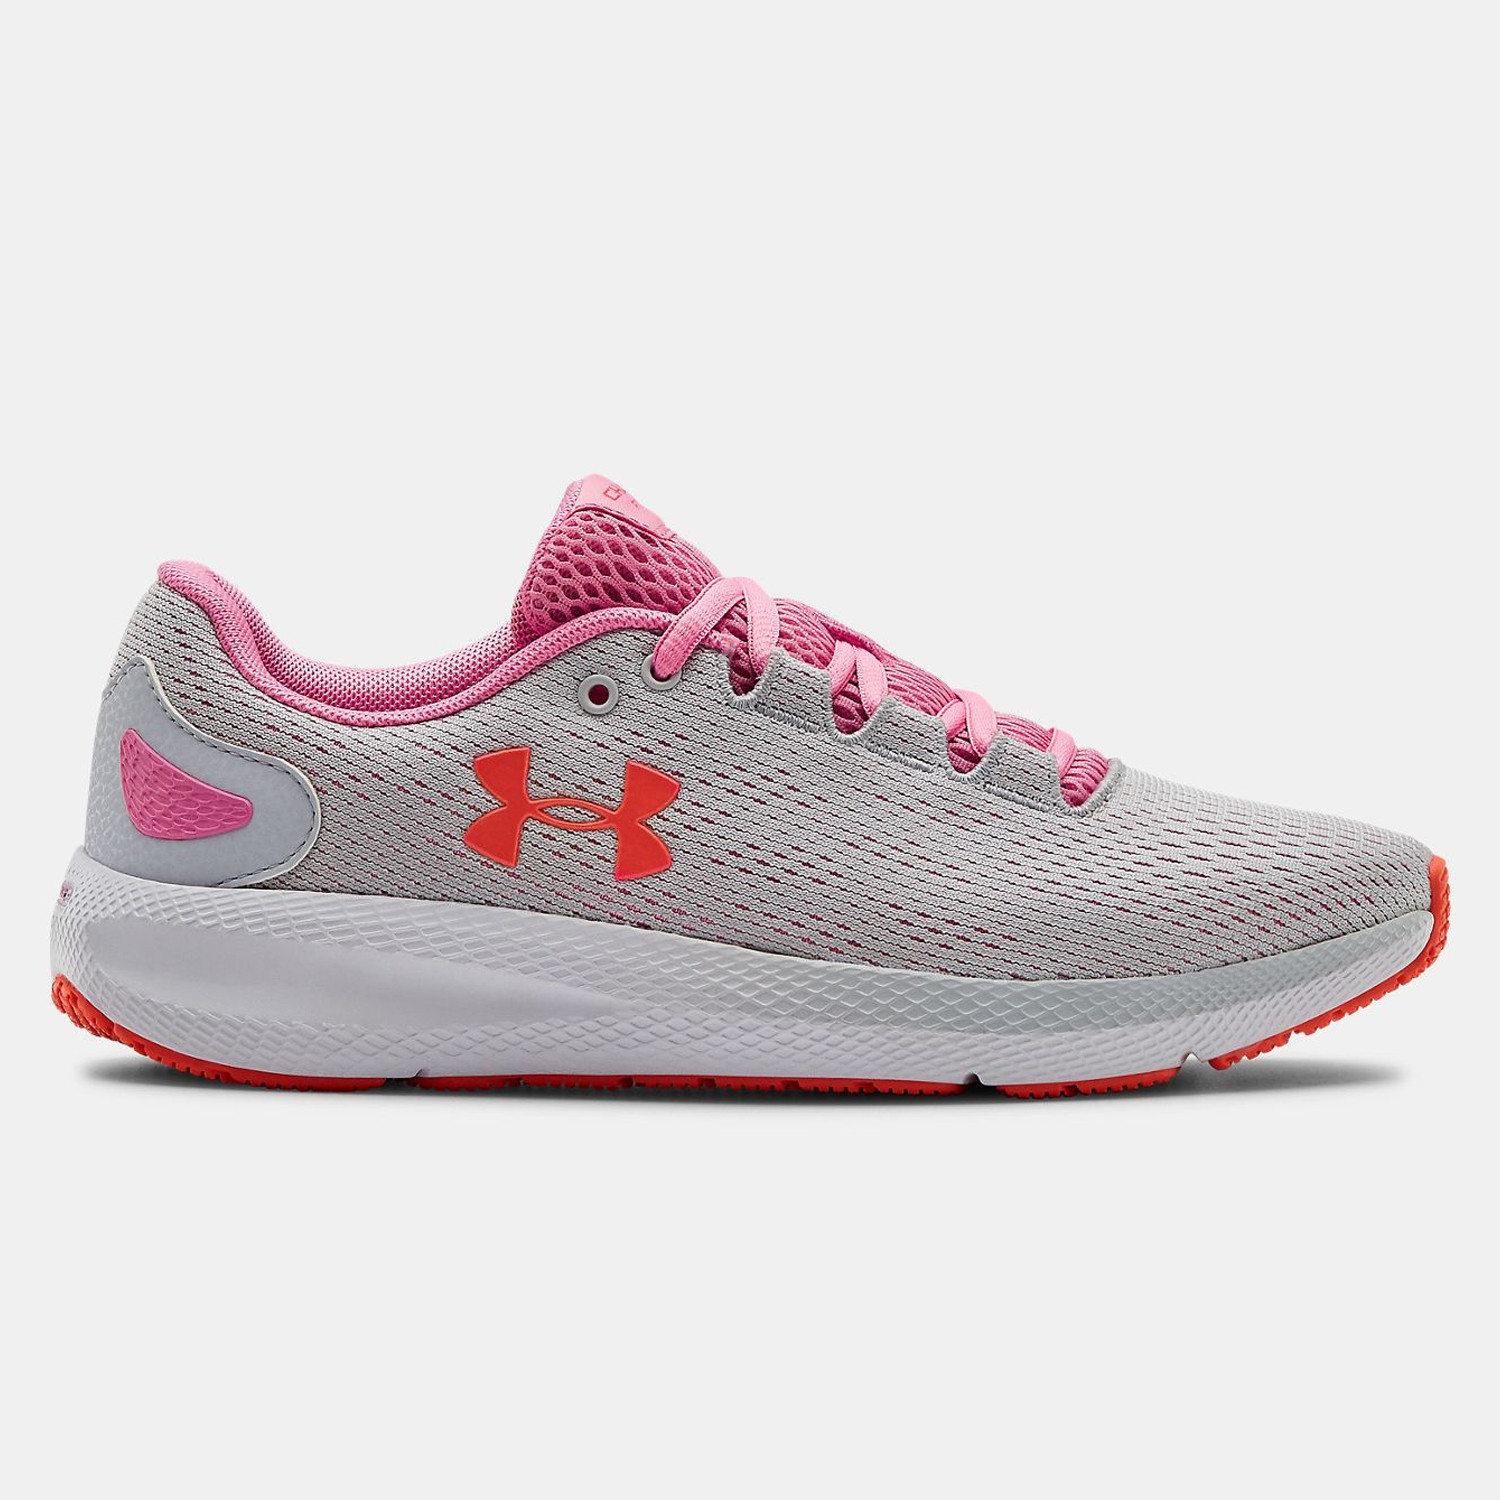 Under Armour Charged Pursuit 2 Women's Shoes (9000047947_44244)